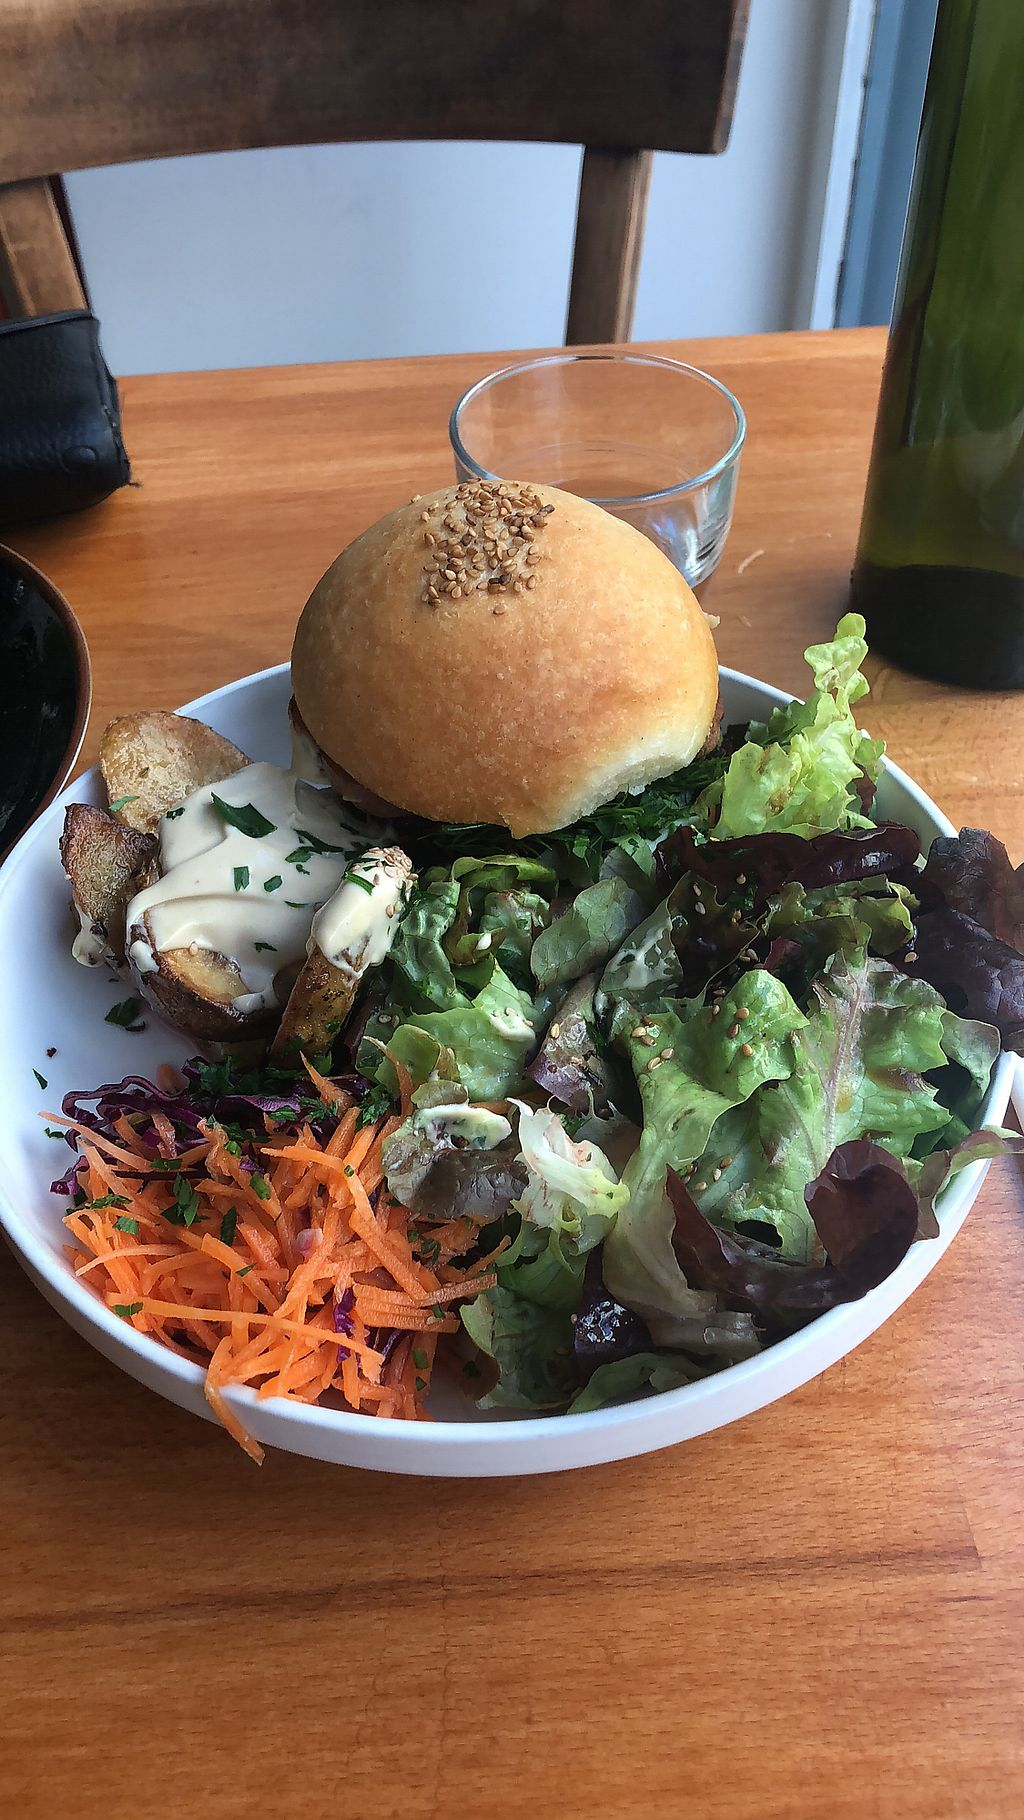 """Photo of Primeur Cantine  by <a href=""""/members/profile/Ashleyhenry"""">Ashleyhenry</a> <br/>Beetroot burger <br/> November 19, 2017  - <a href='/contact/abuse/image/81418/327018'>Report</a>"""